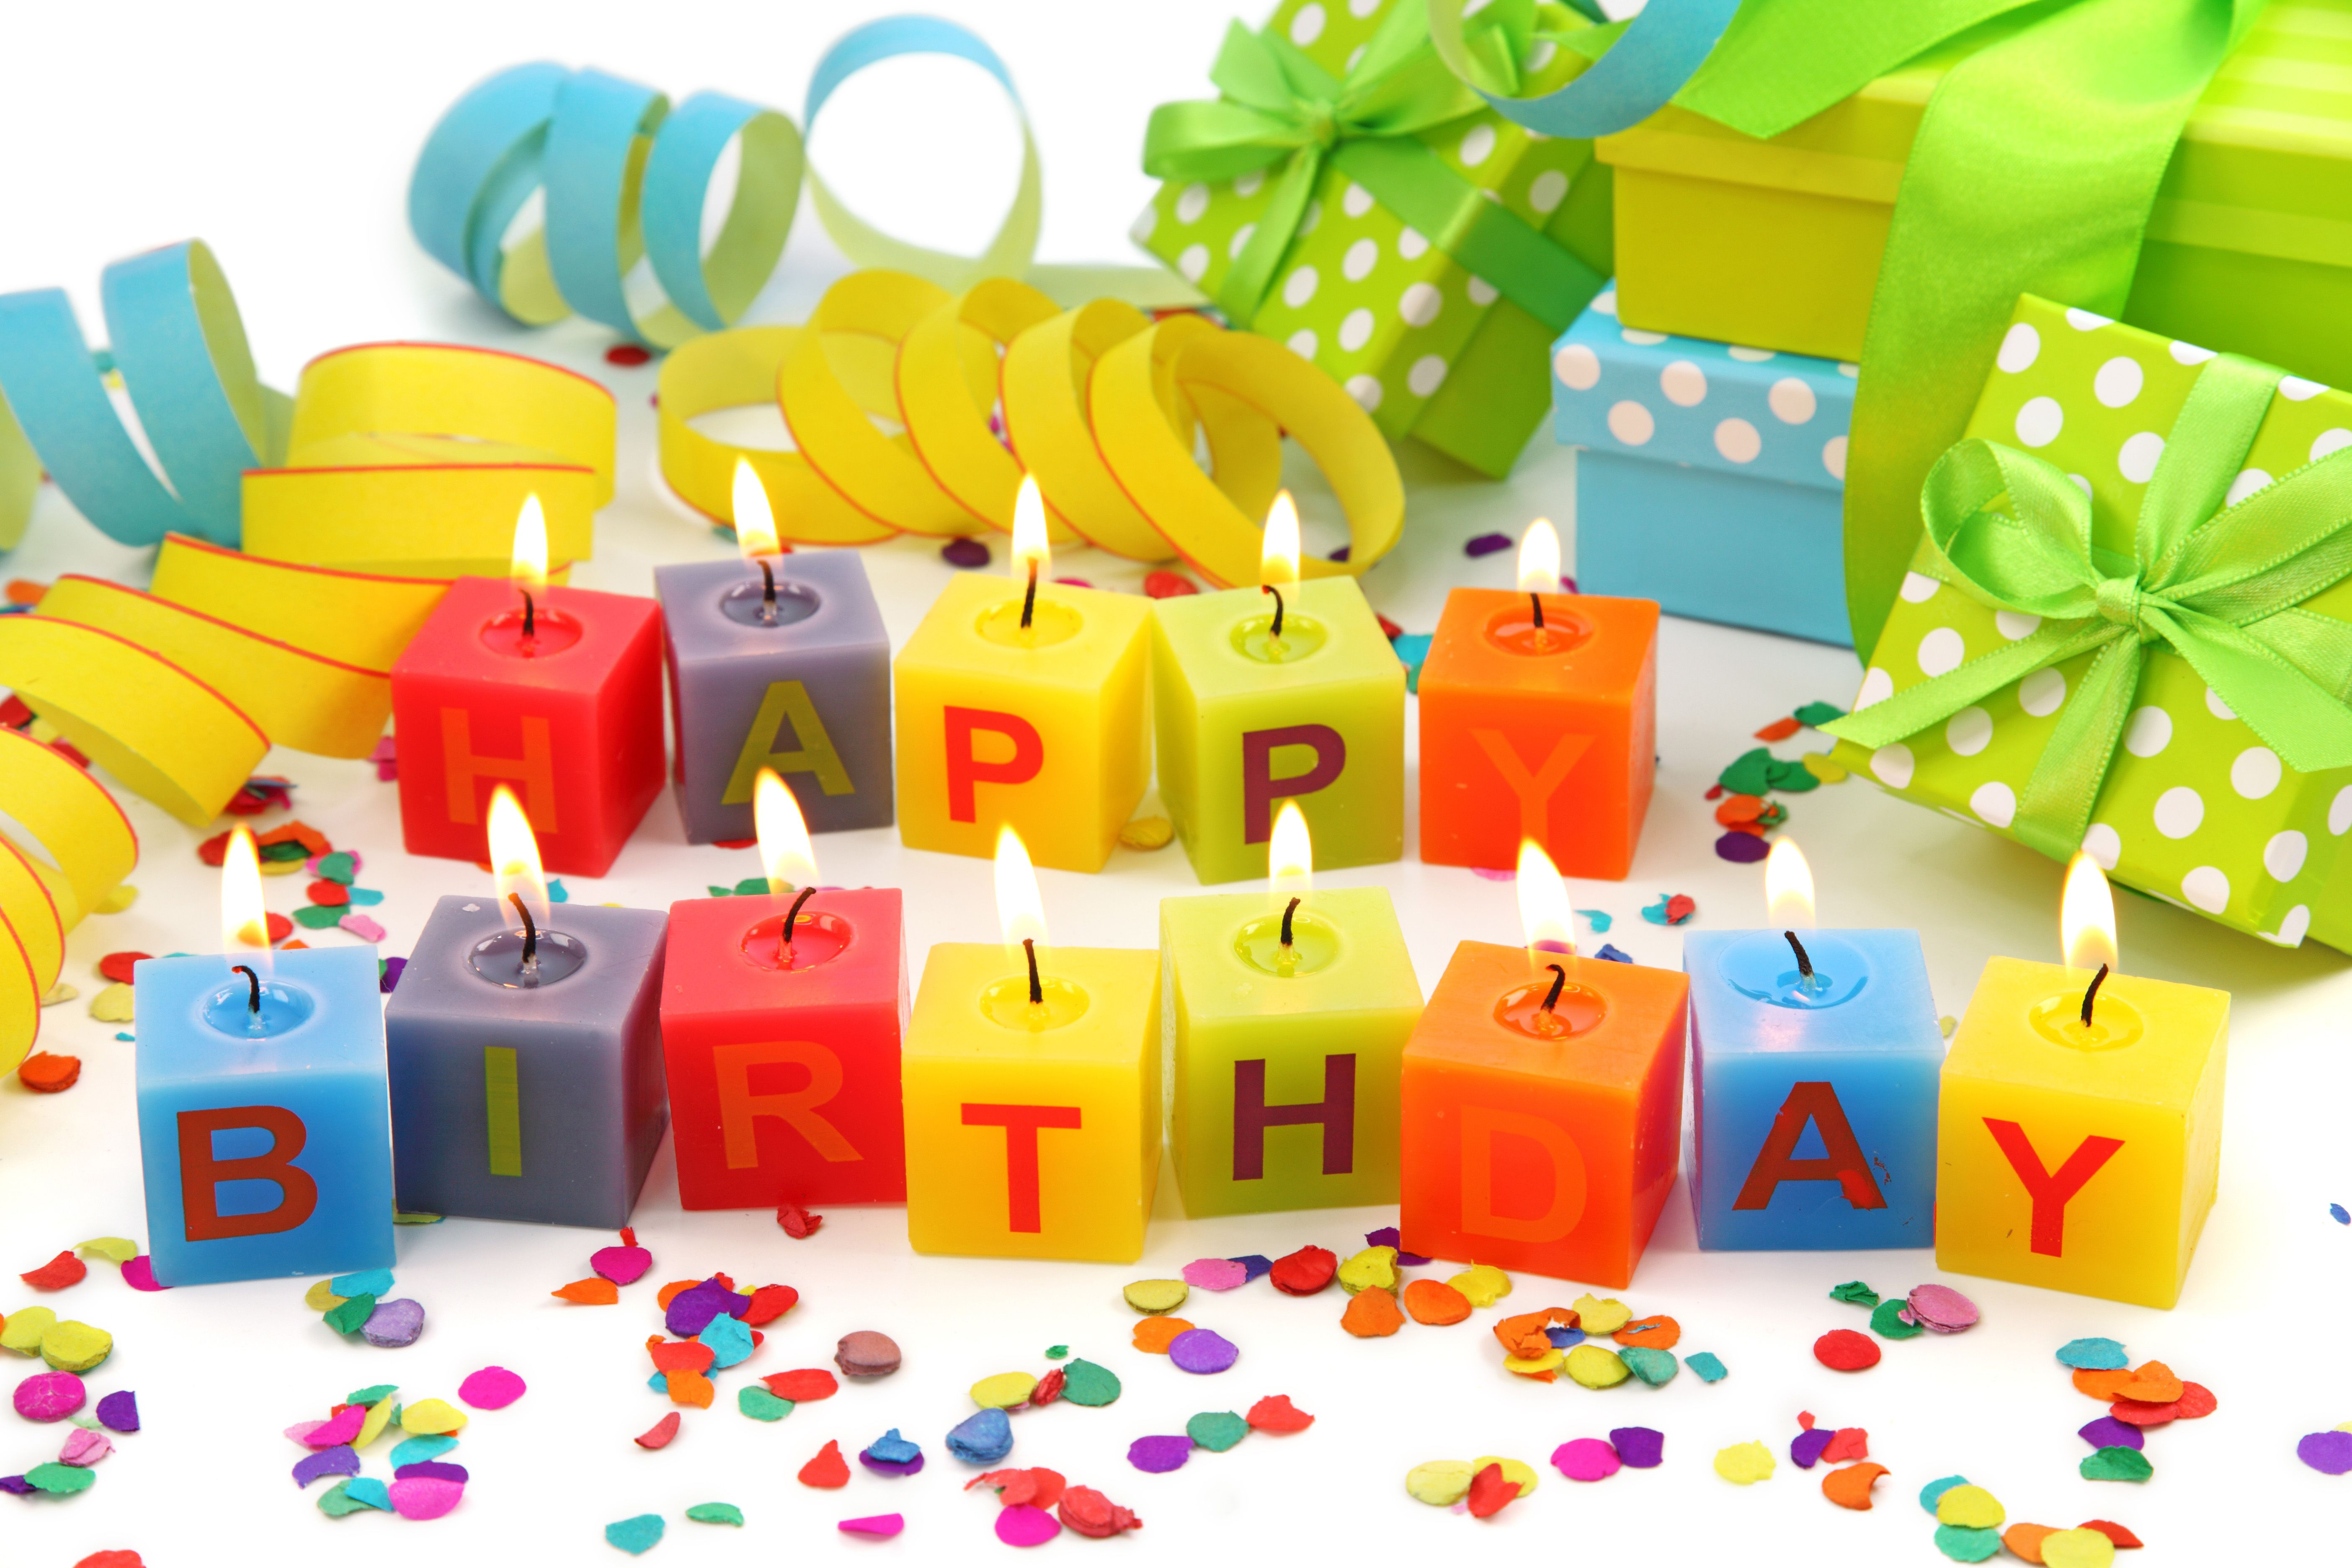 Hd wallpaper birthday - Happy Birthday Wallpapers Collection For Free Download Hd Wallpapers Pinterest Happy Birthday And Wallpaper